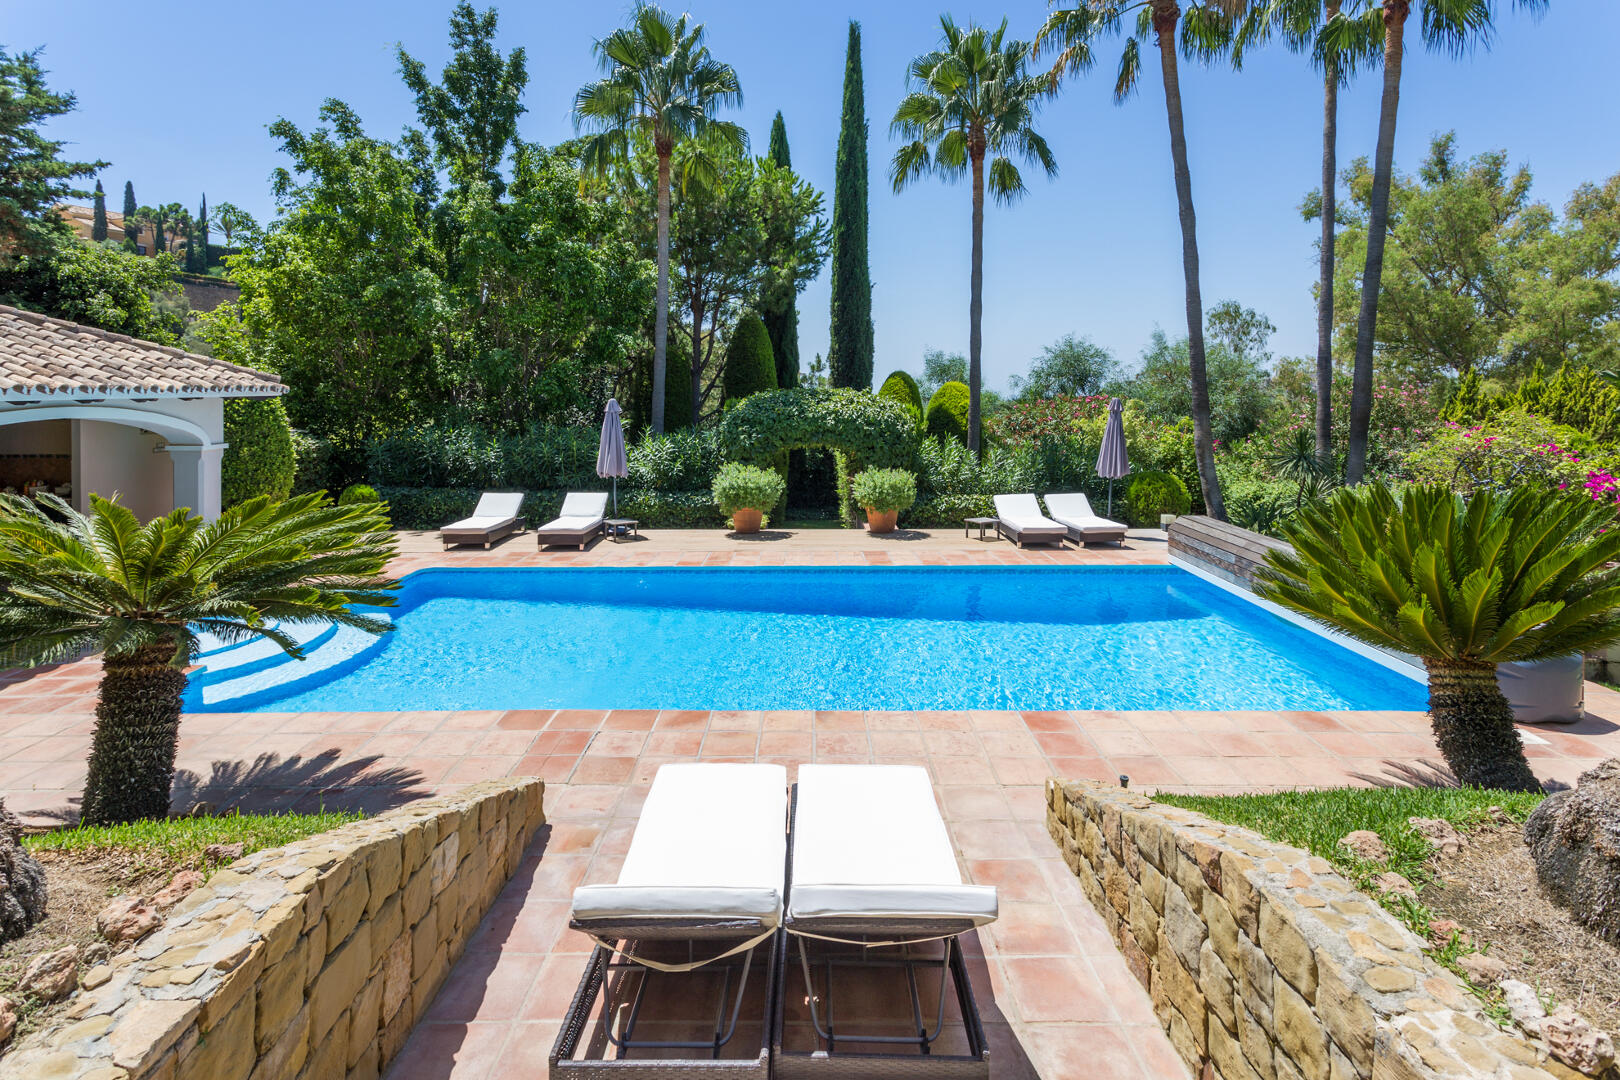 Beautiful private 5 bedroom Villa in Puerto de los Almendros gated community in Benahavis municipality